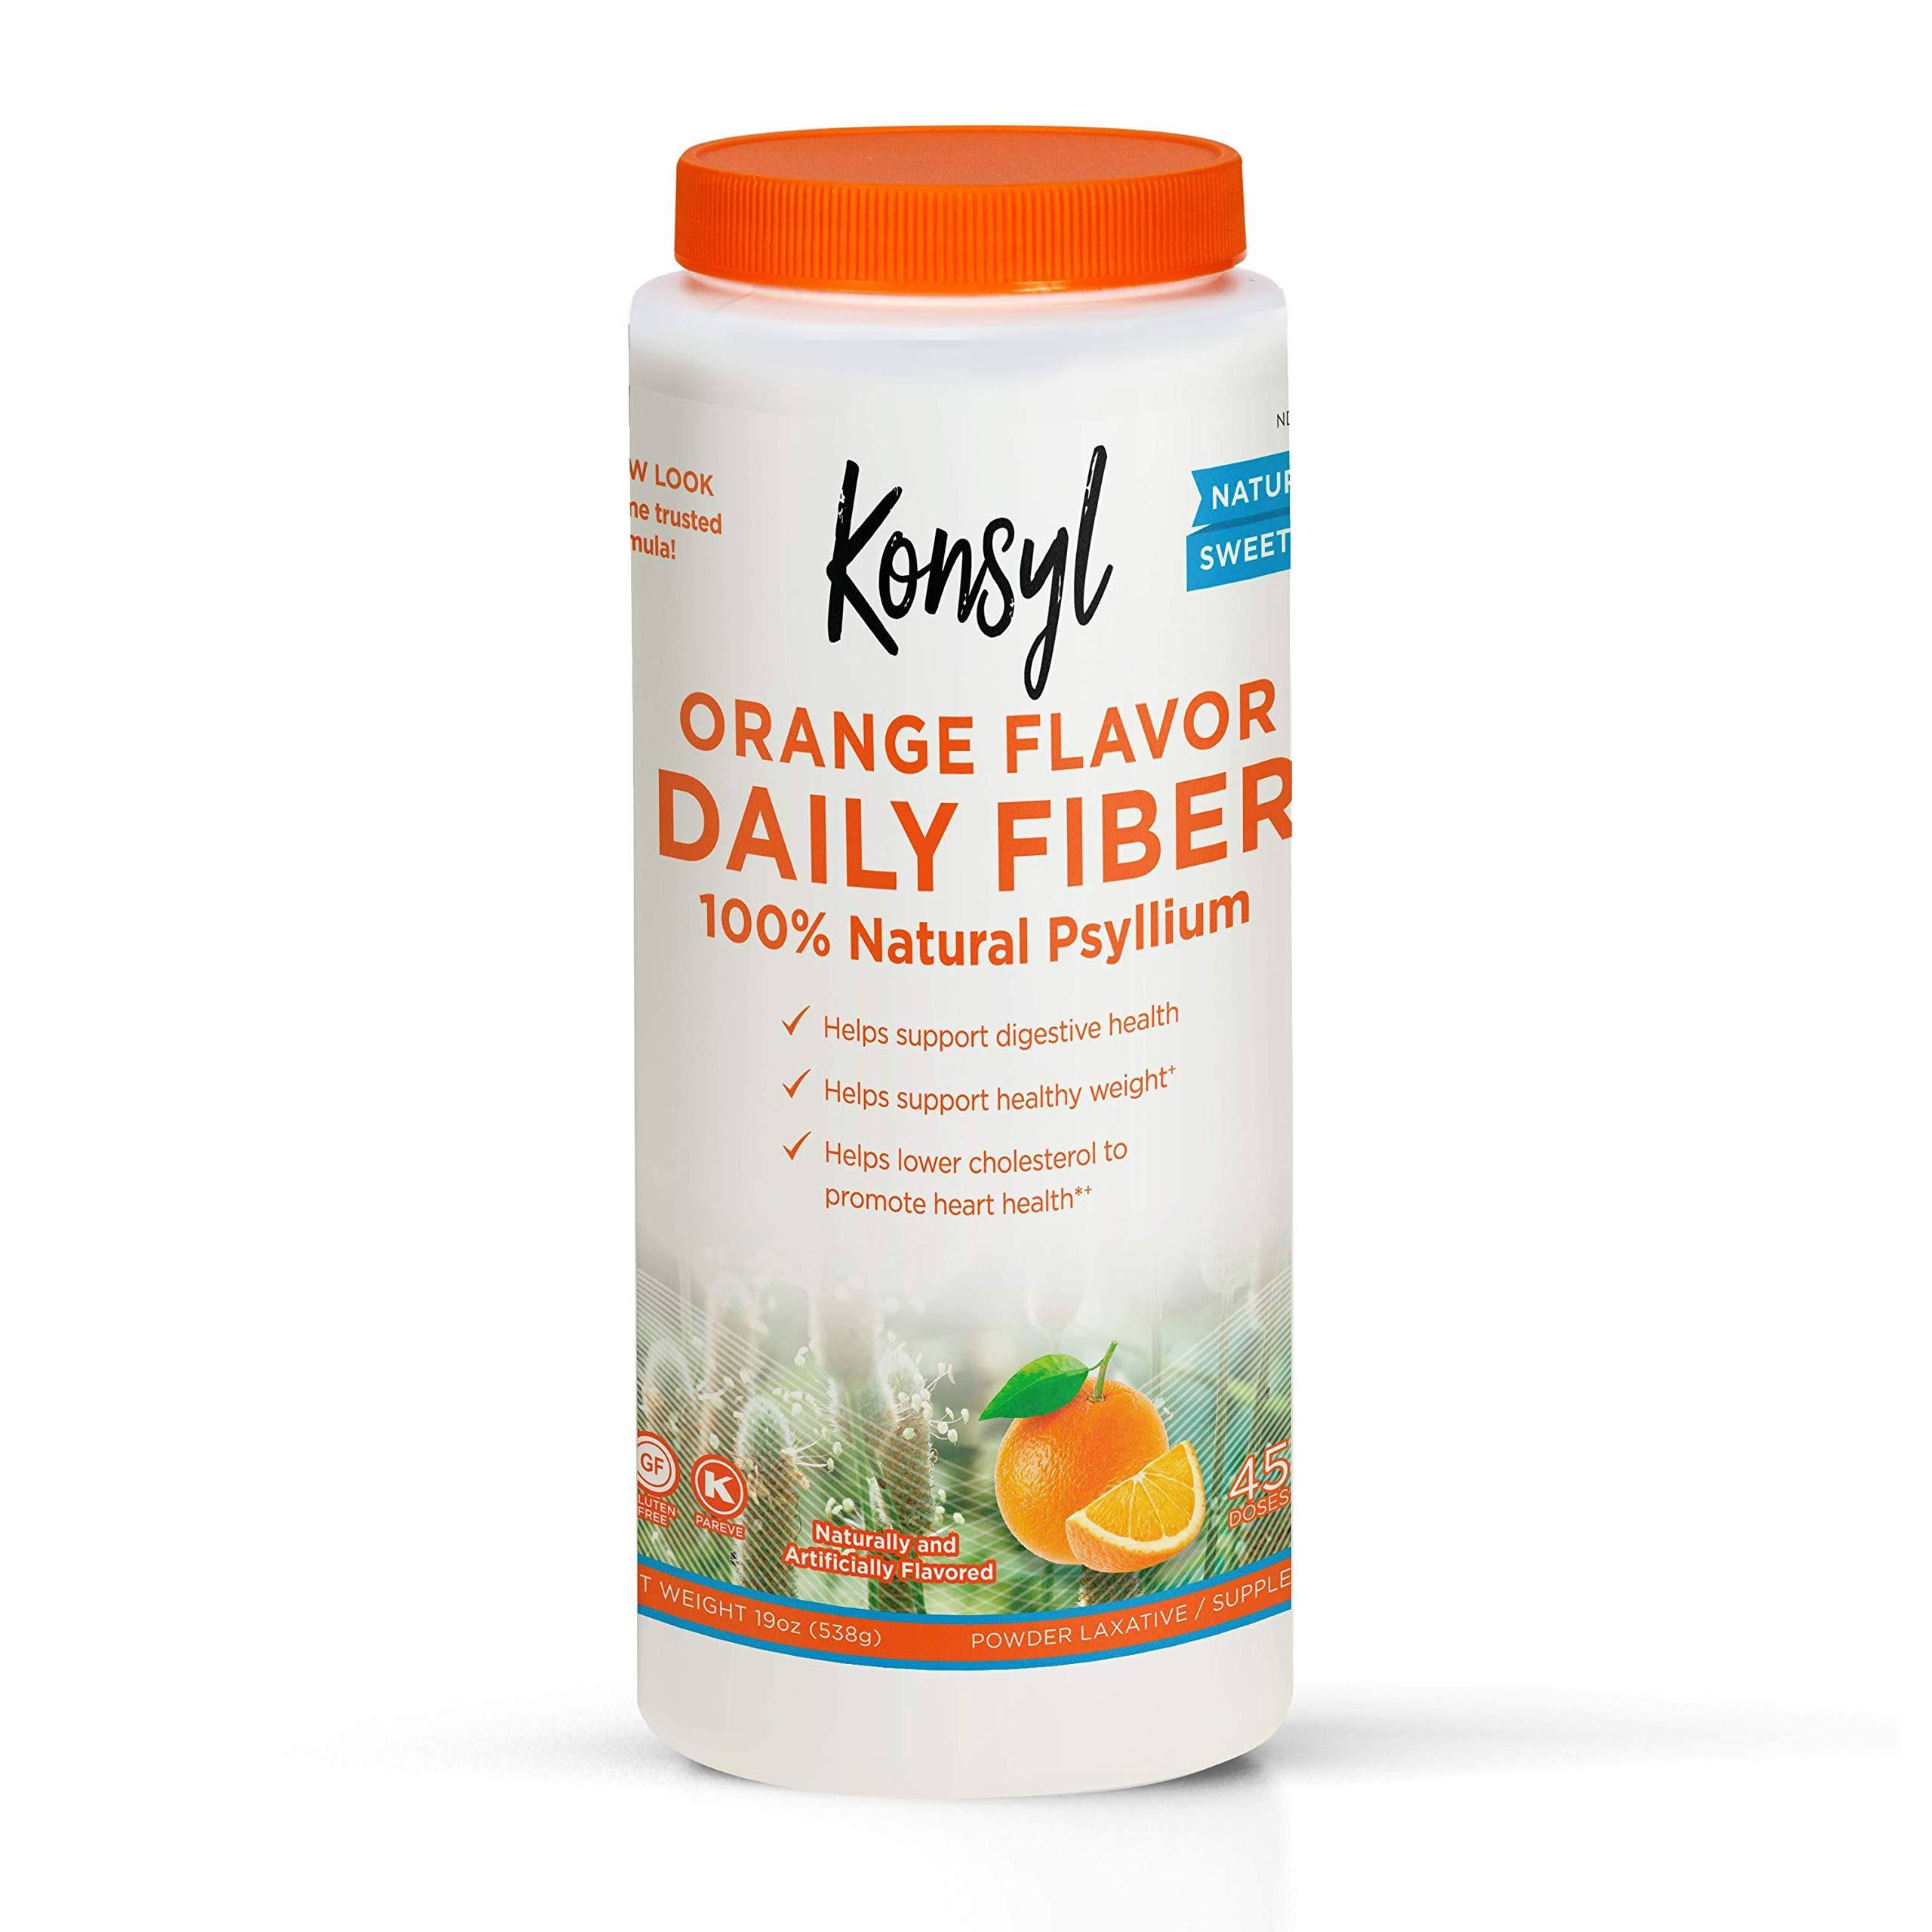 Konsyl Psyllium Fiber Laxative Supplement - Orange Flavor, 19oz